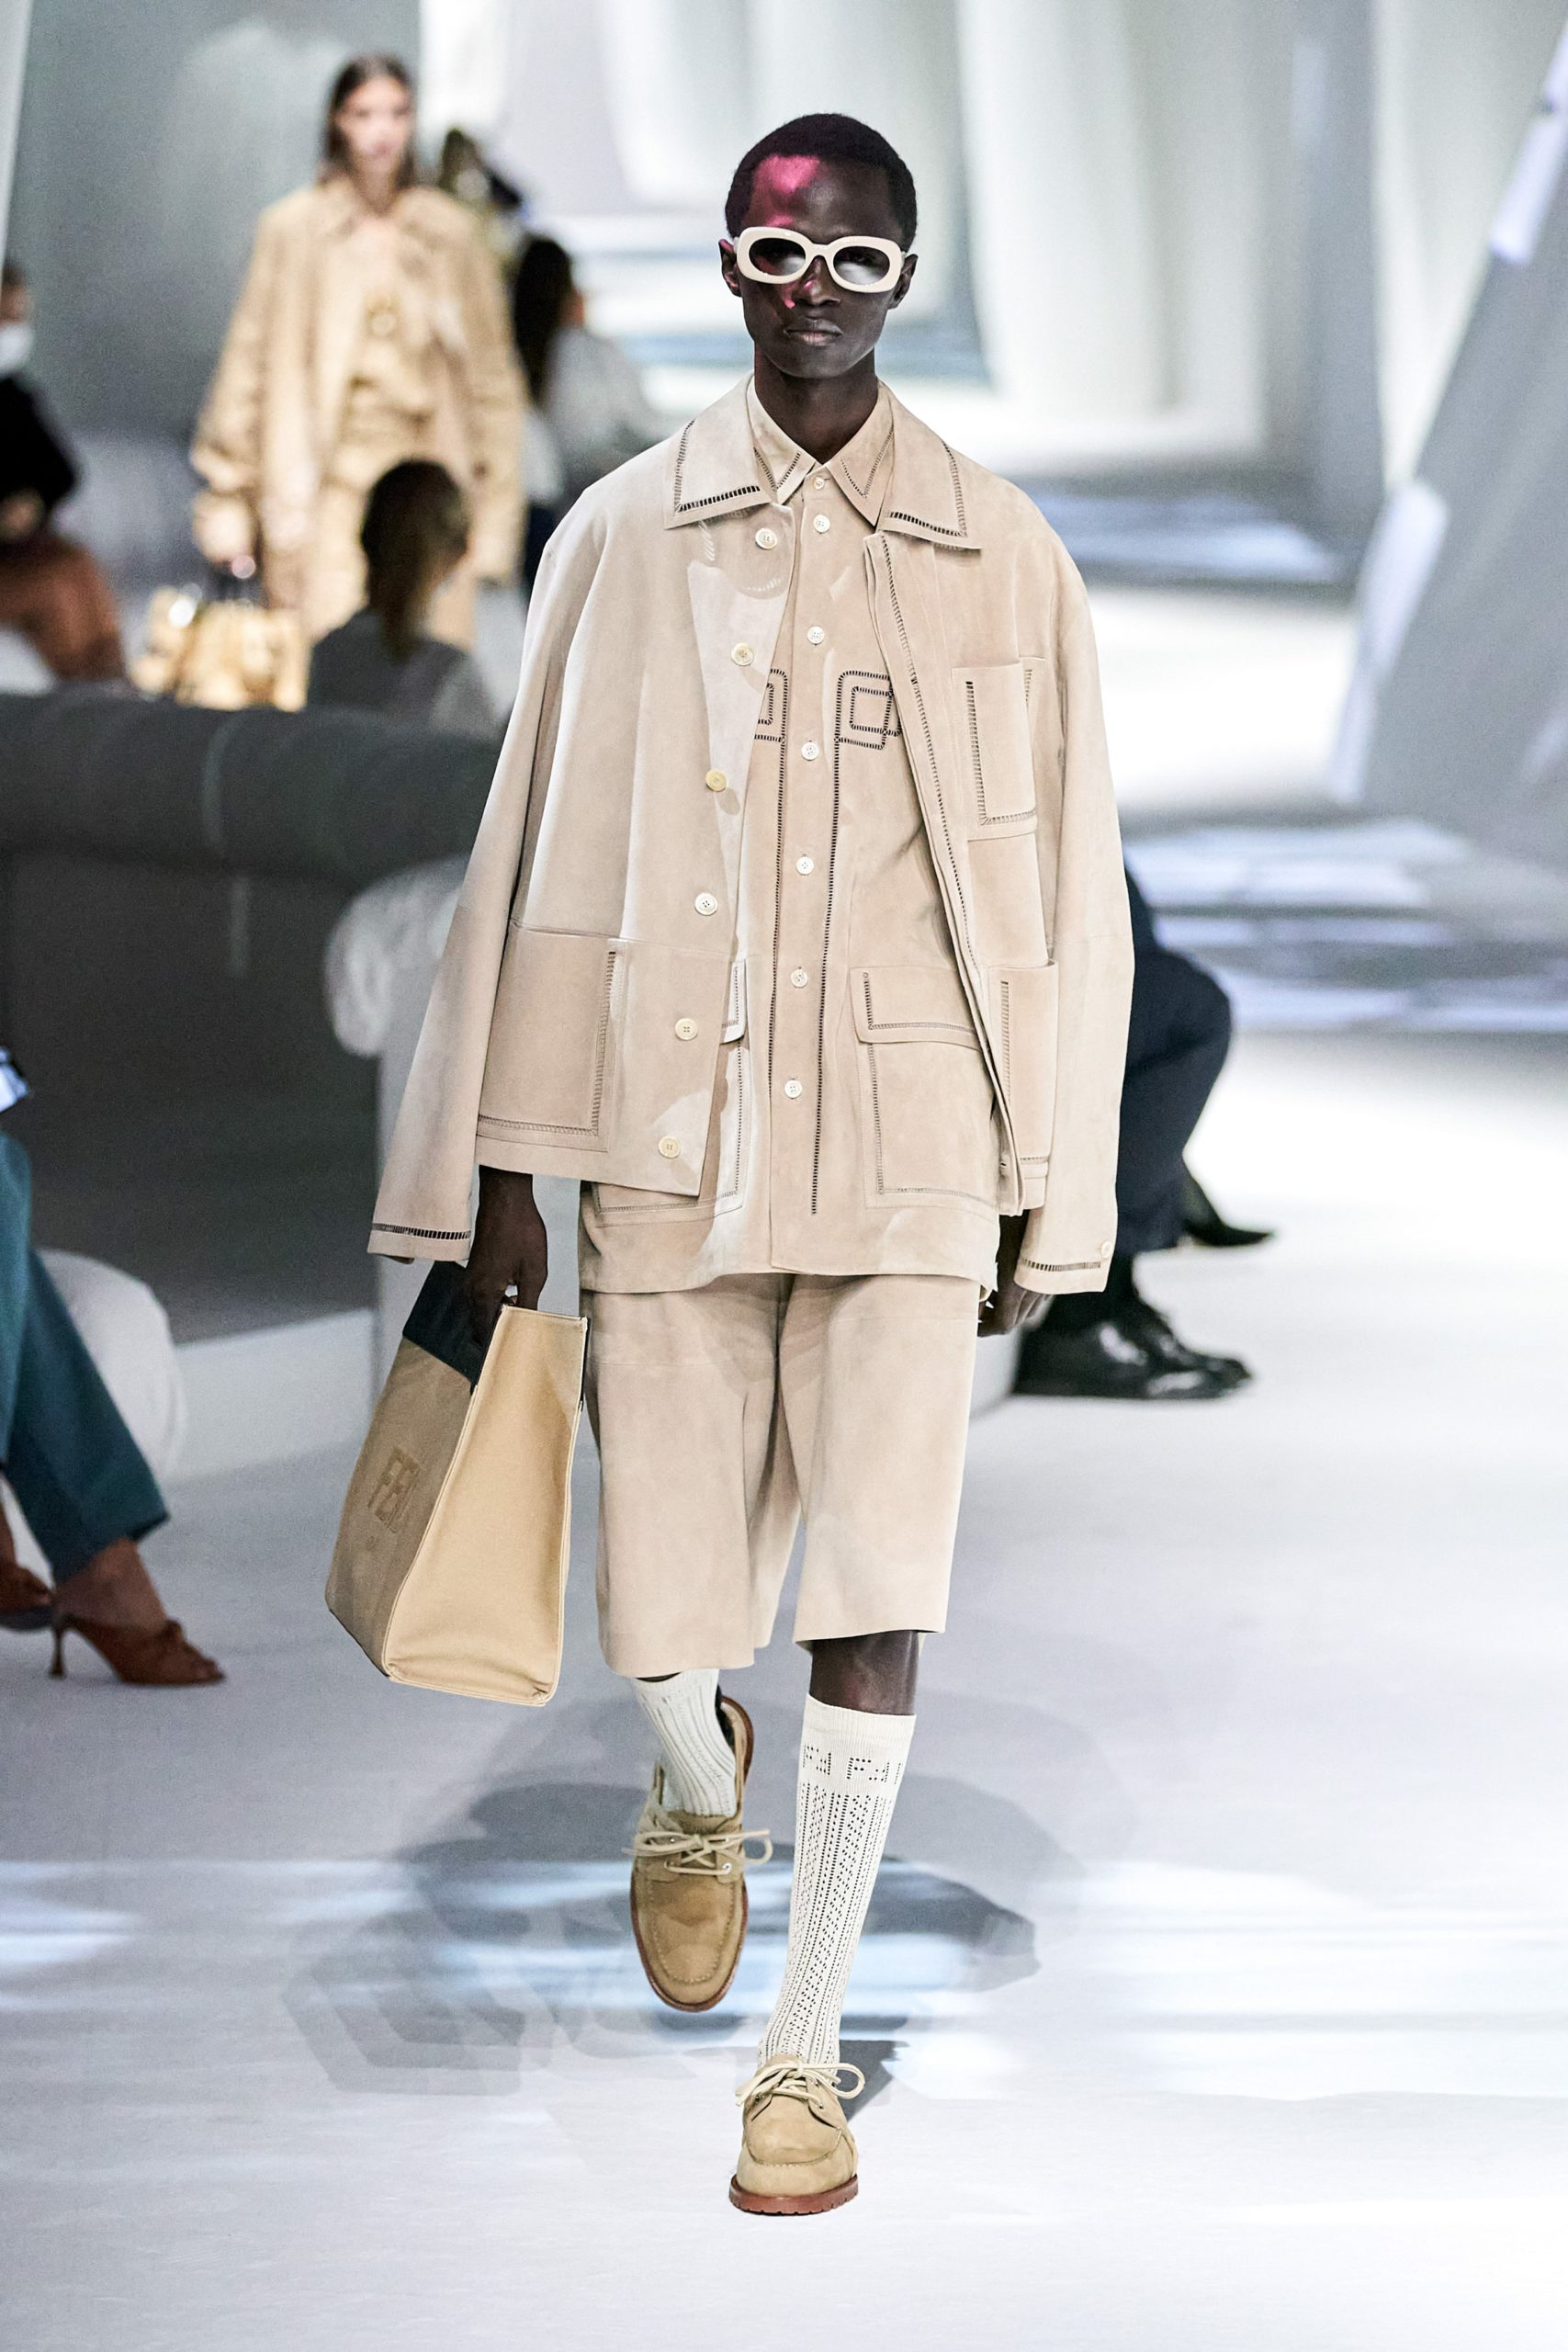 MFW: Fendi Spring/Summer 2021 Menswear Looks